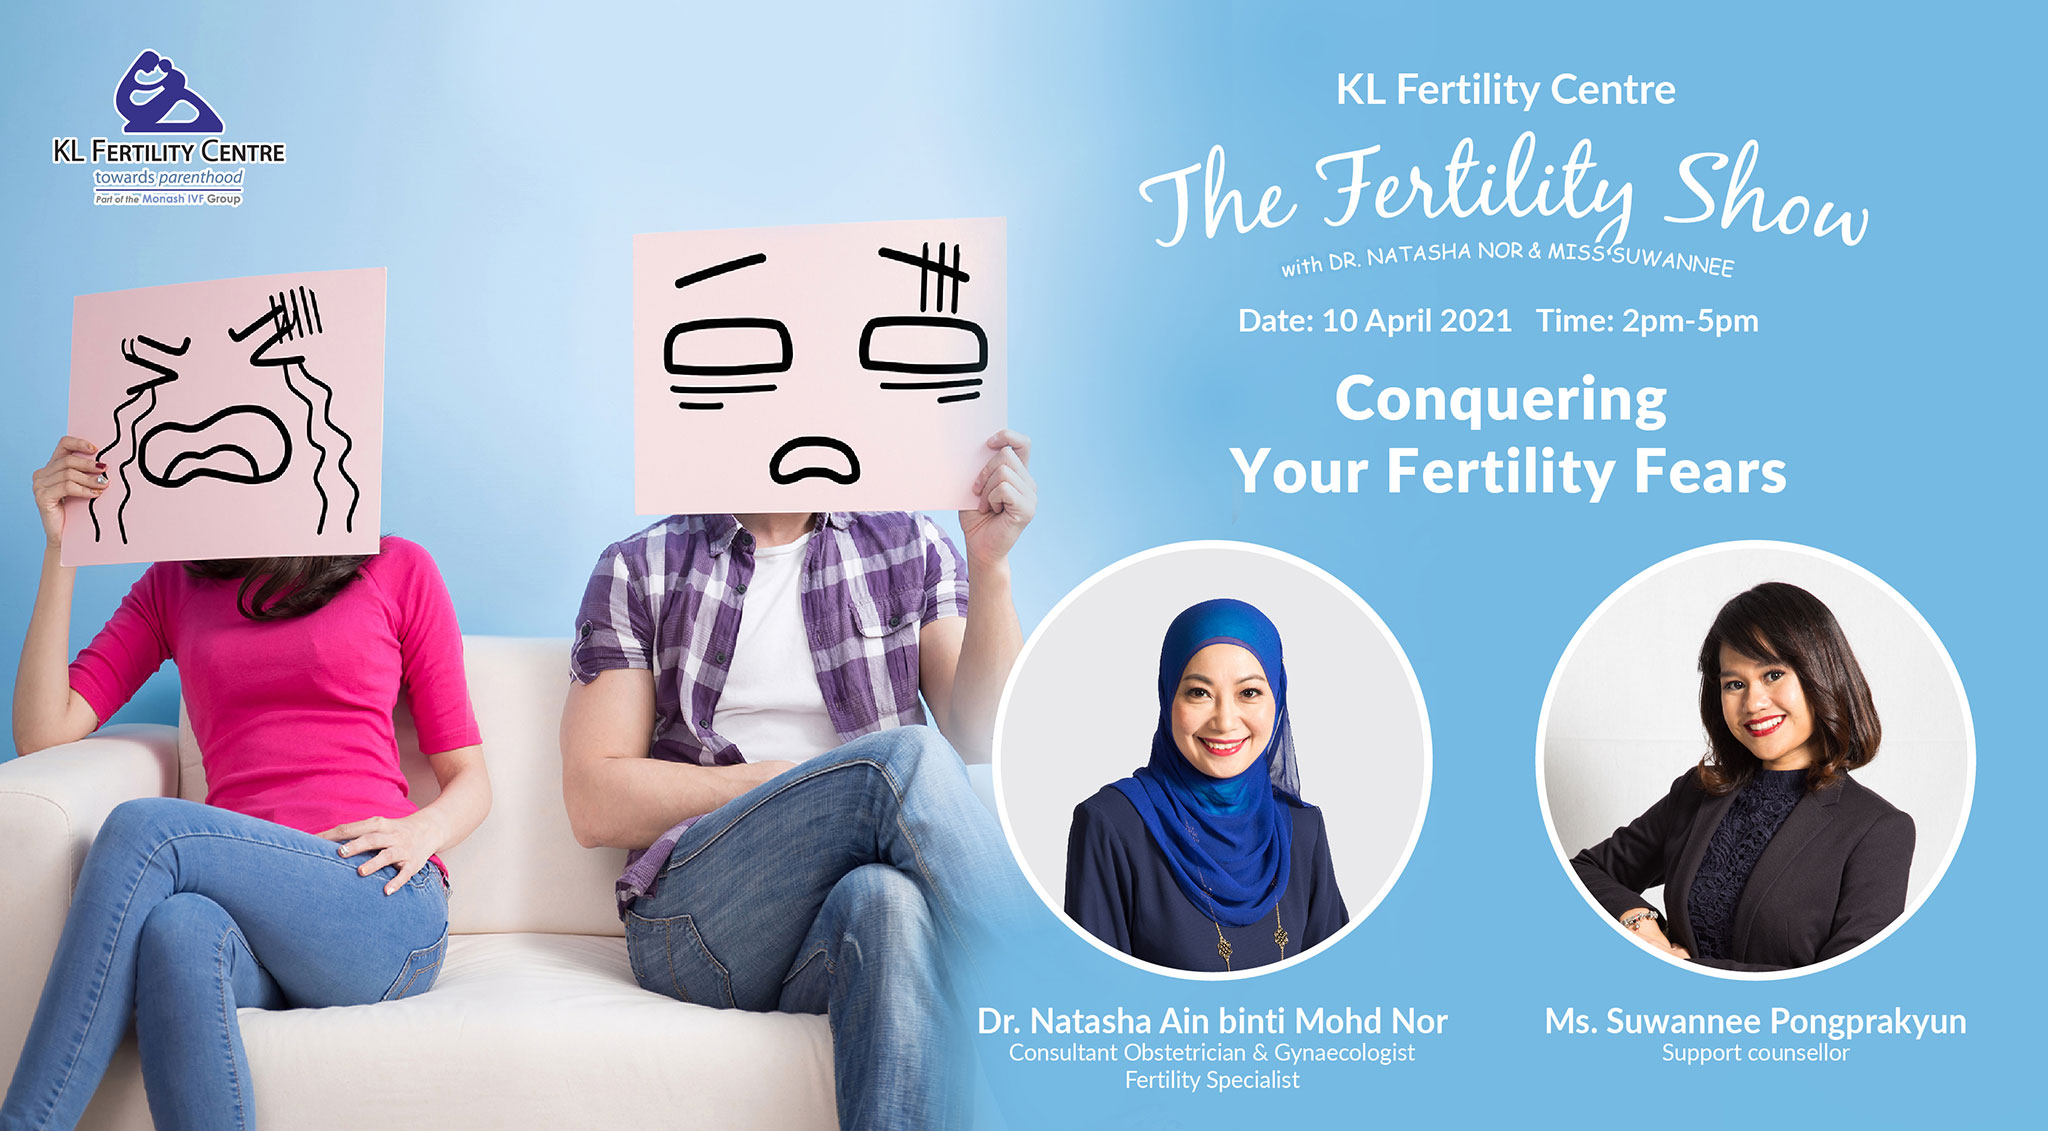 The Fertility Show : Conquering Your Fertility Fears, 10 April 2021 - Dr. Natasha Nor and Ms. Suwannee